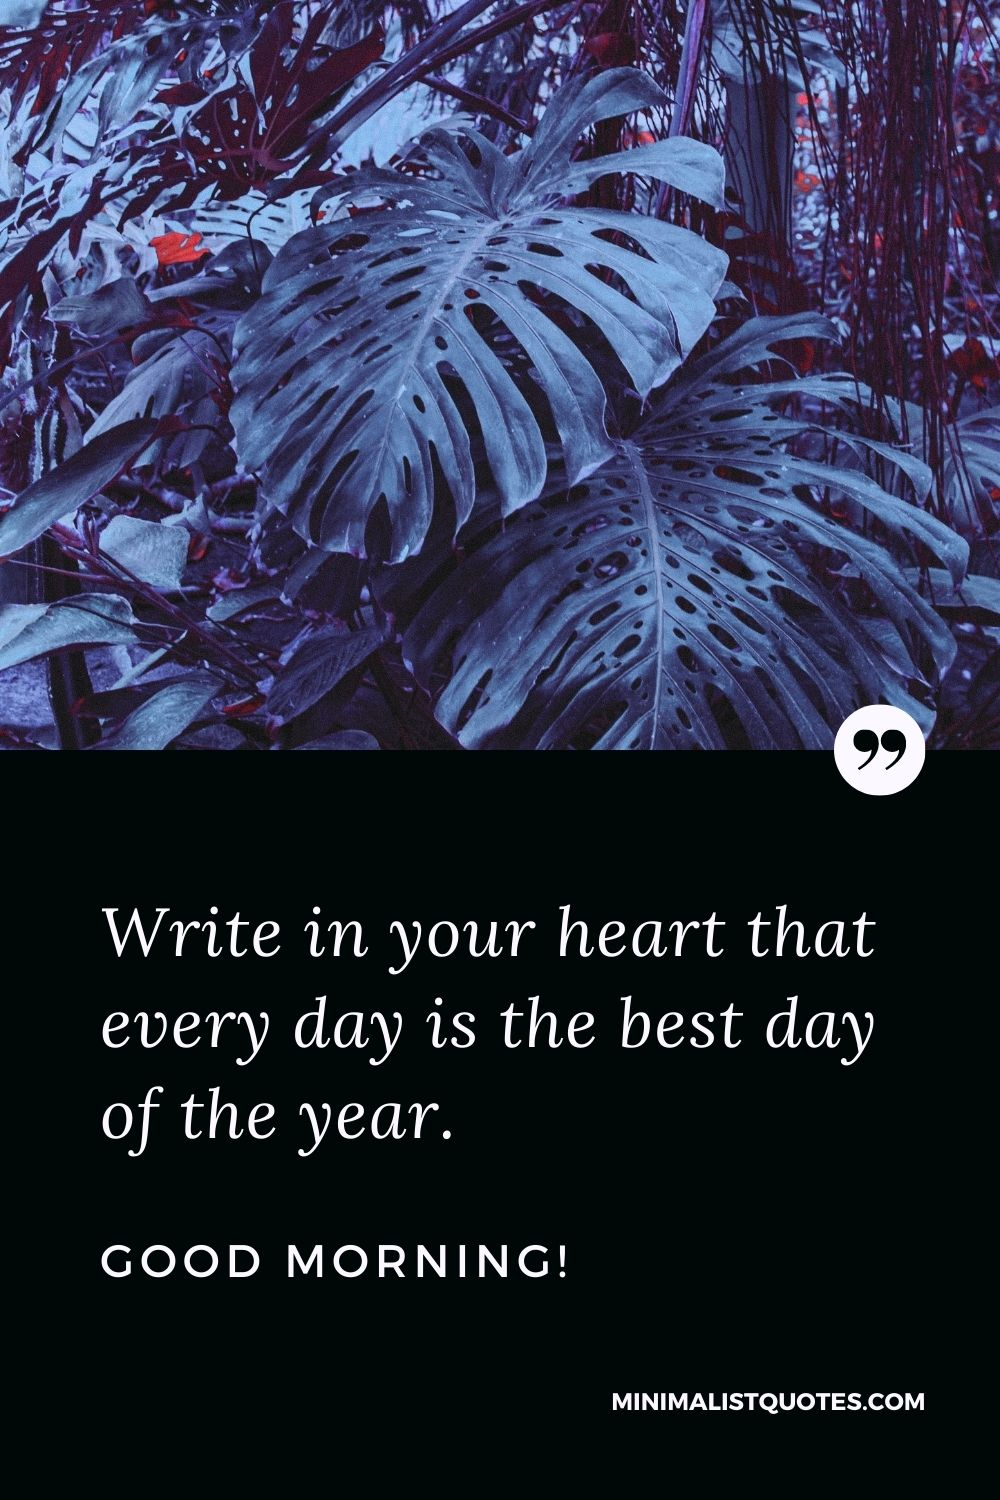 Good Morning Quote, Wish & Message: Write in your heart that every day is the best day of the year. Good Morning!